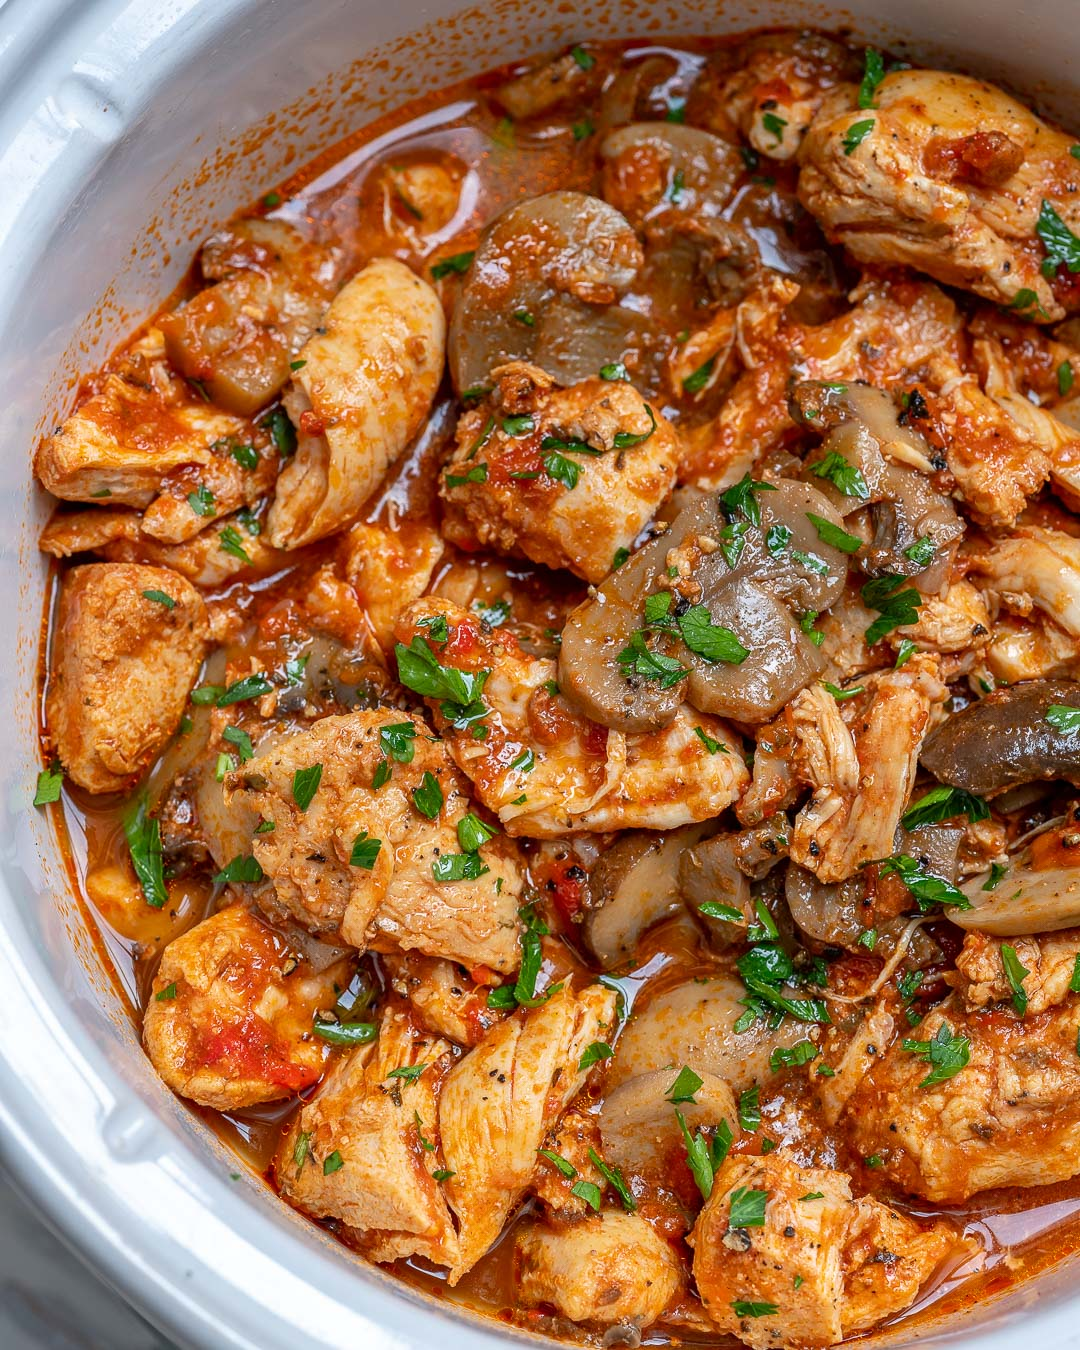 Crockpot Chicken with Mushrooms by CleanFoodCrush Recipes